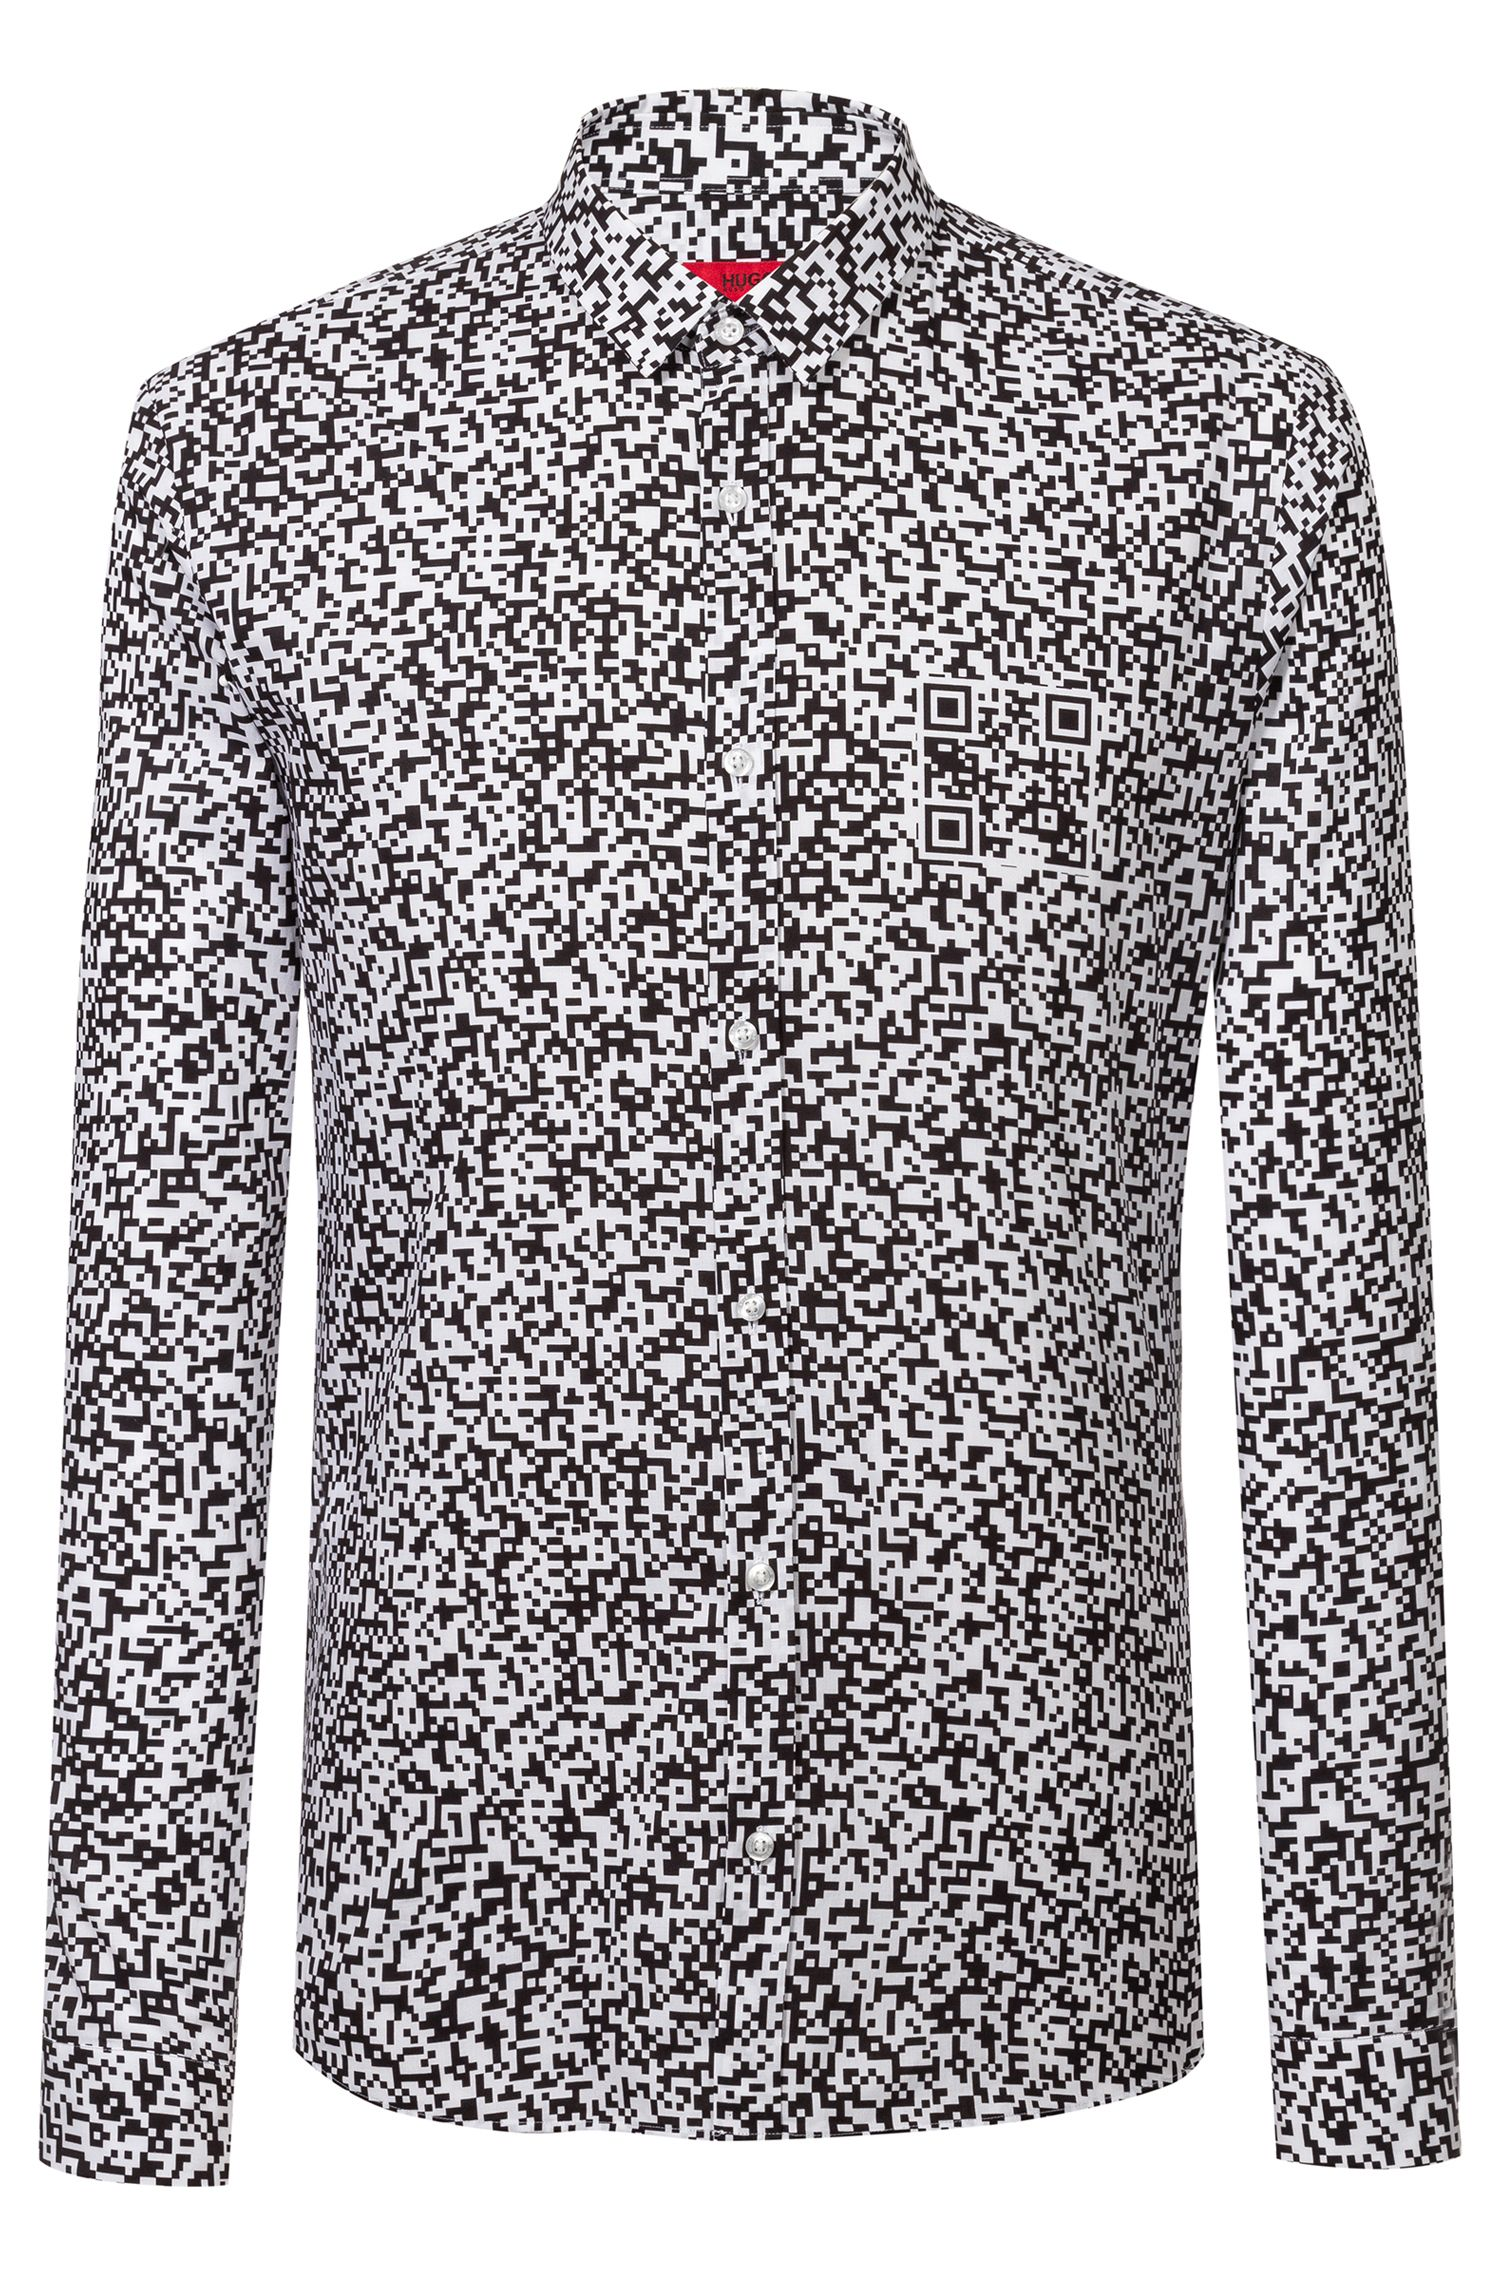 Extra-slim-fit cotton shirt with QR-code print, Black